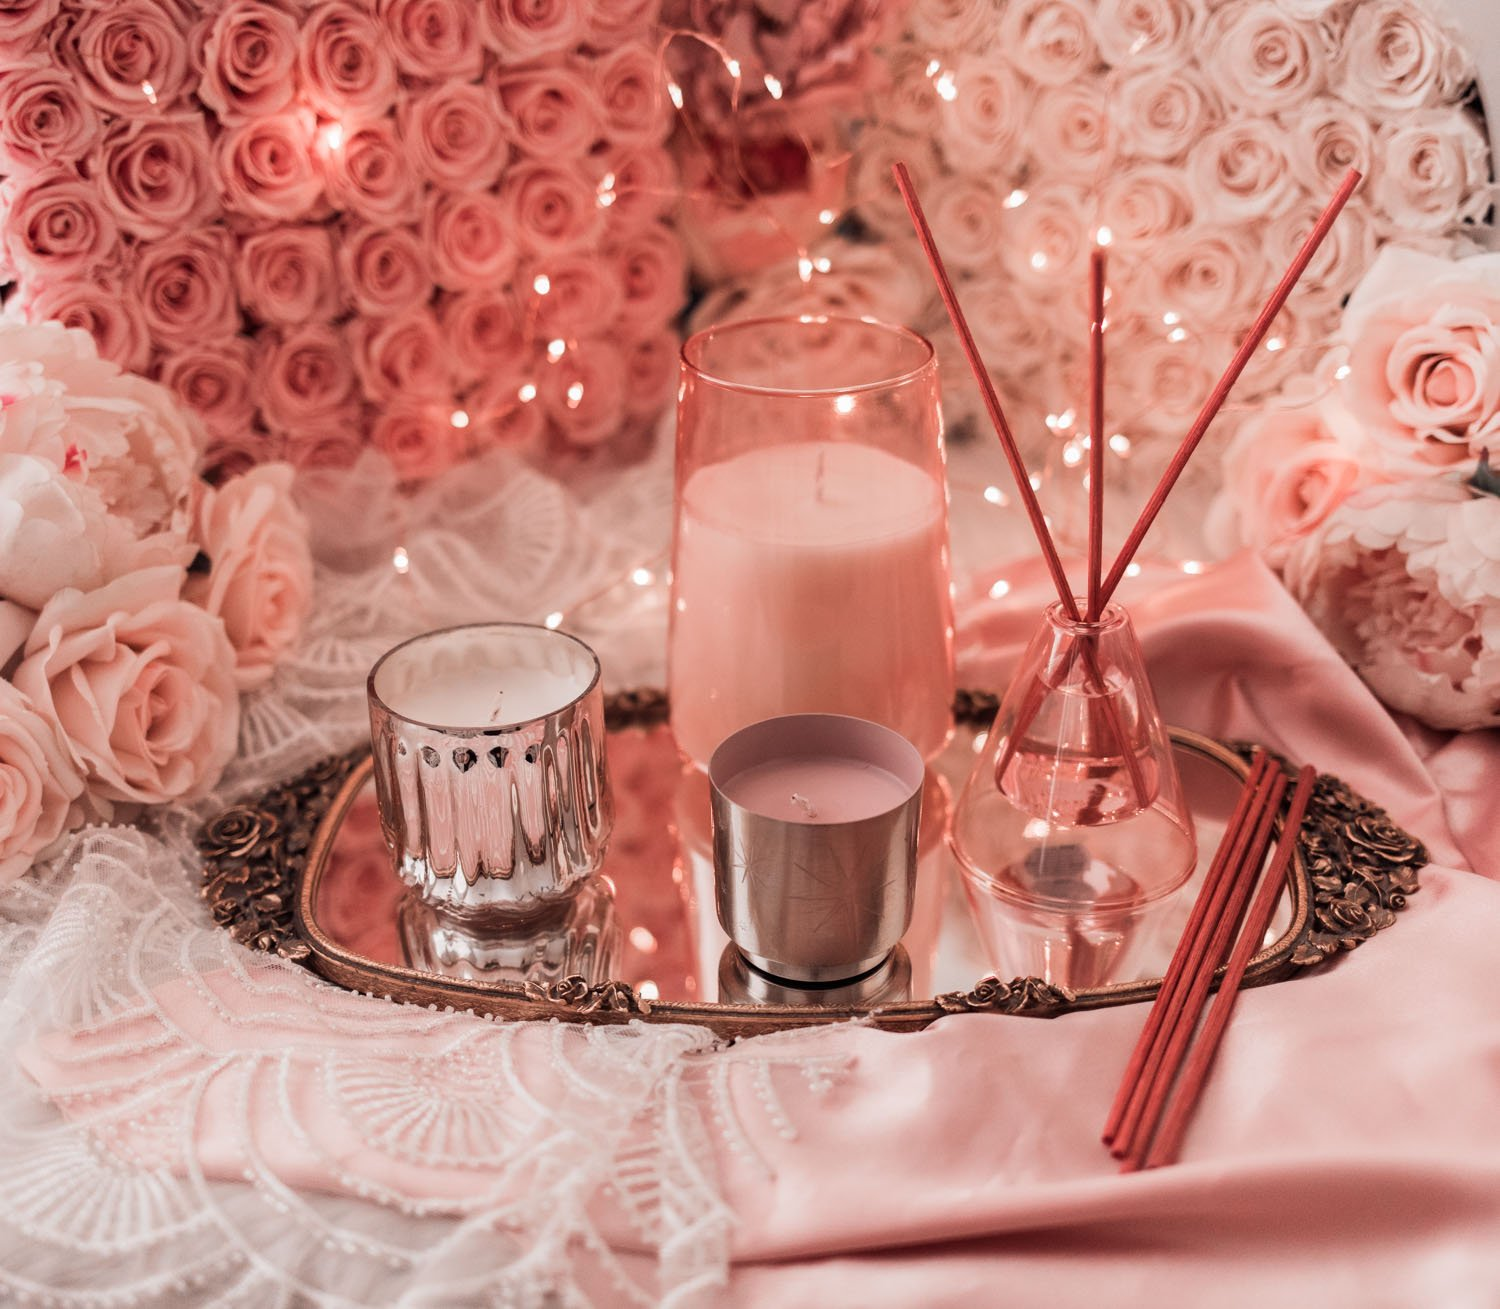 Fashion Blogger Elizabeth Hugen of Lizzie in Lace shares her Pretty Pink Holiday Gift Guide including these Pink Pine Illume candles